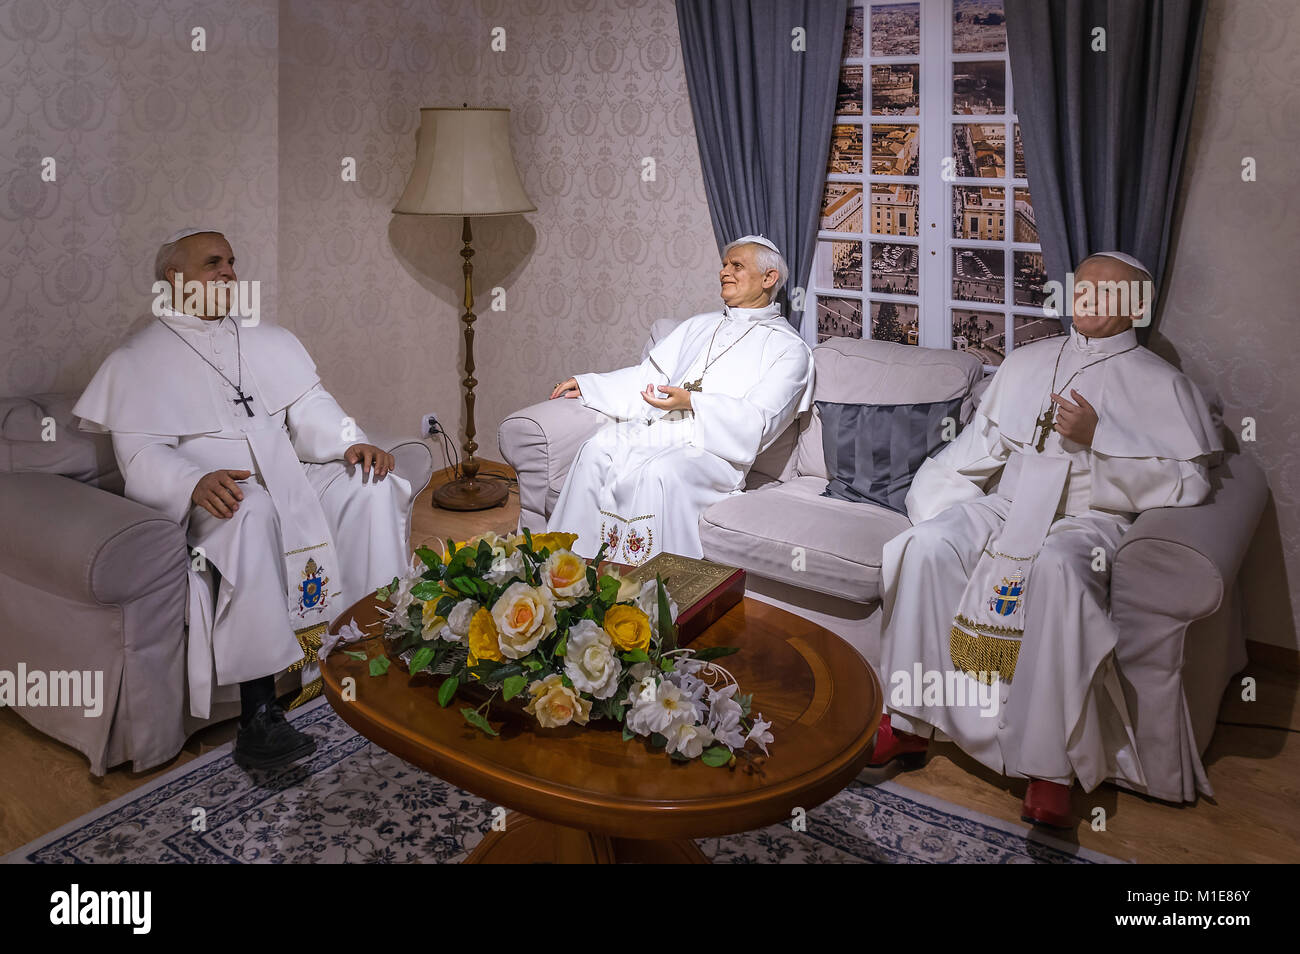 Wax statues of the heads of the Roman Catholic Church at the Krakow Wax Museum - Cracow, Poland - Stock Image